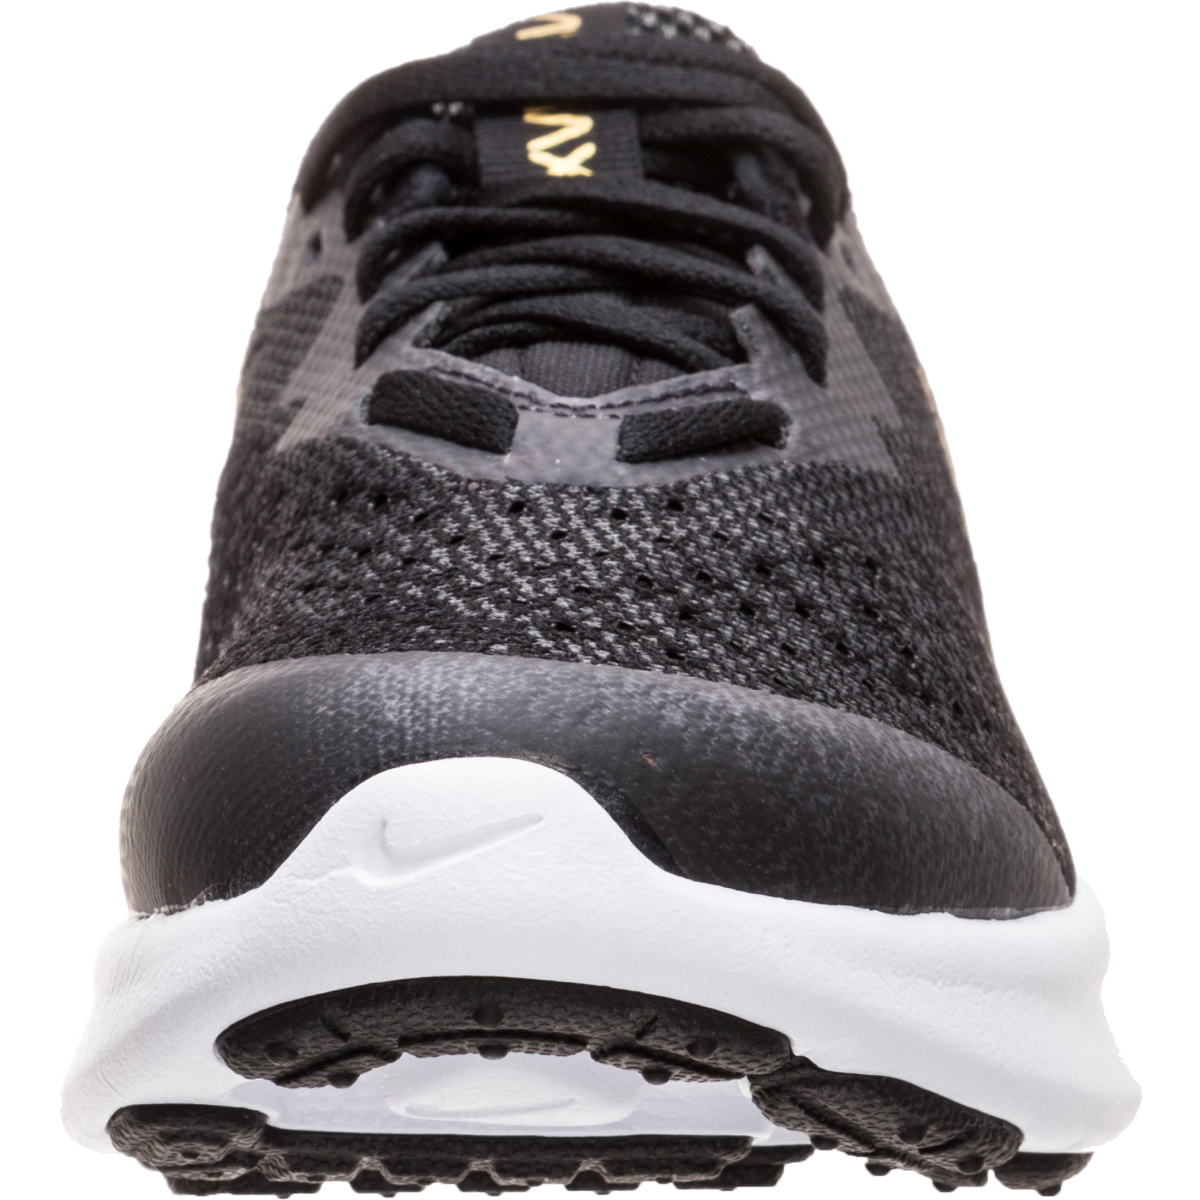 Details about Nike Air Max Sequent 4 Utility Mens Running BlackAnthracite White AV3236 002